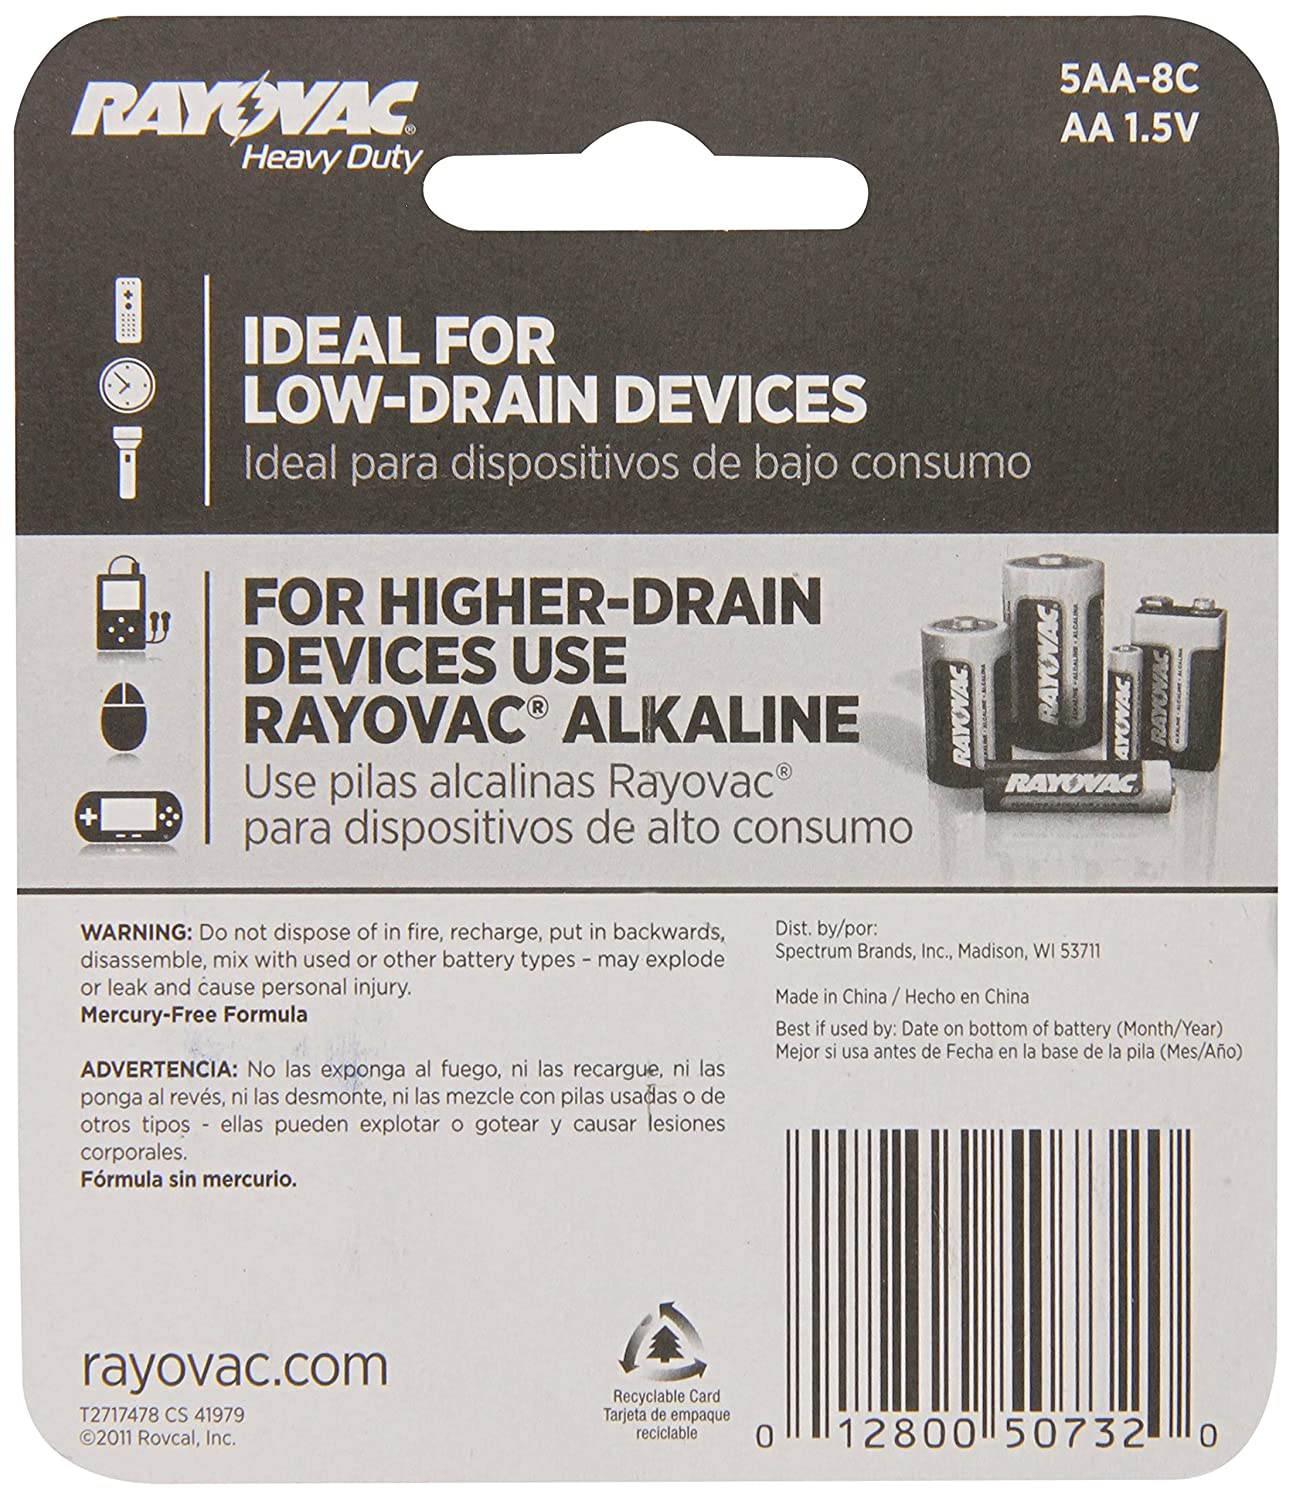 Amazon.com: Rayovac Rayovac Heavy Duty Batteries, AA Size,8 Pack: Health & Personal Care